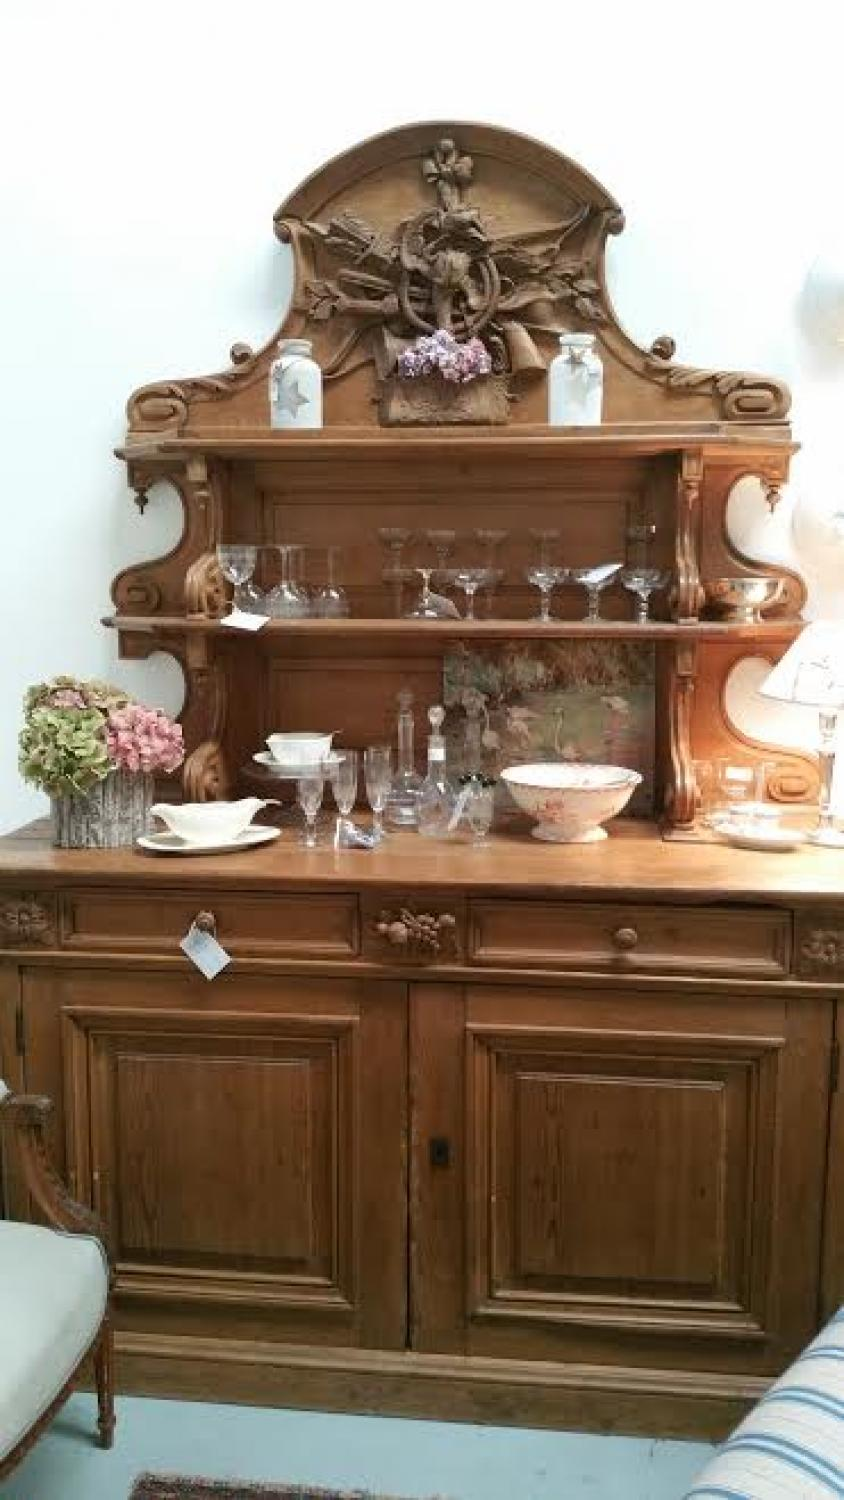 Antique French Hunting Buffet c.1840